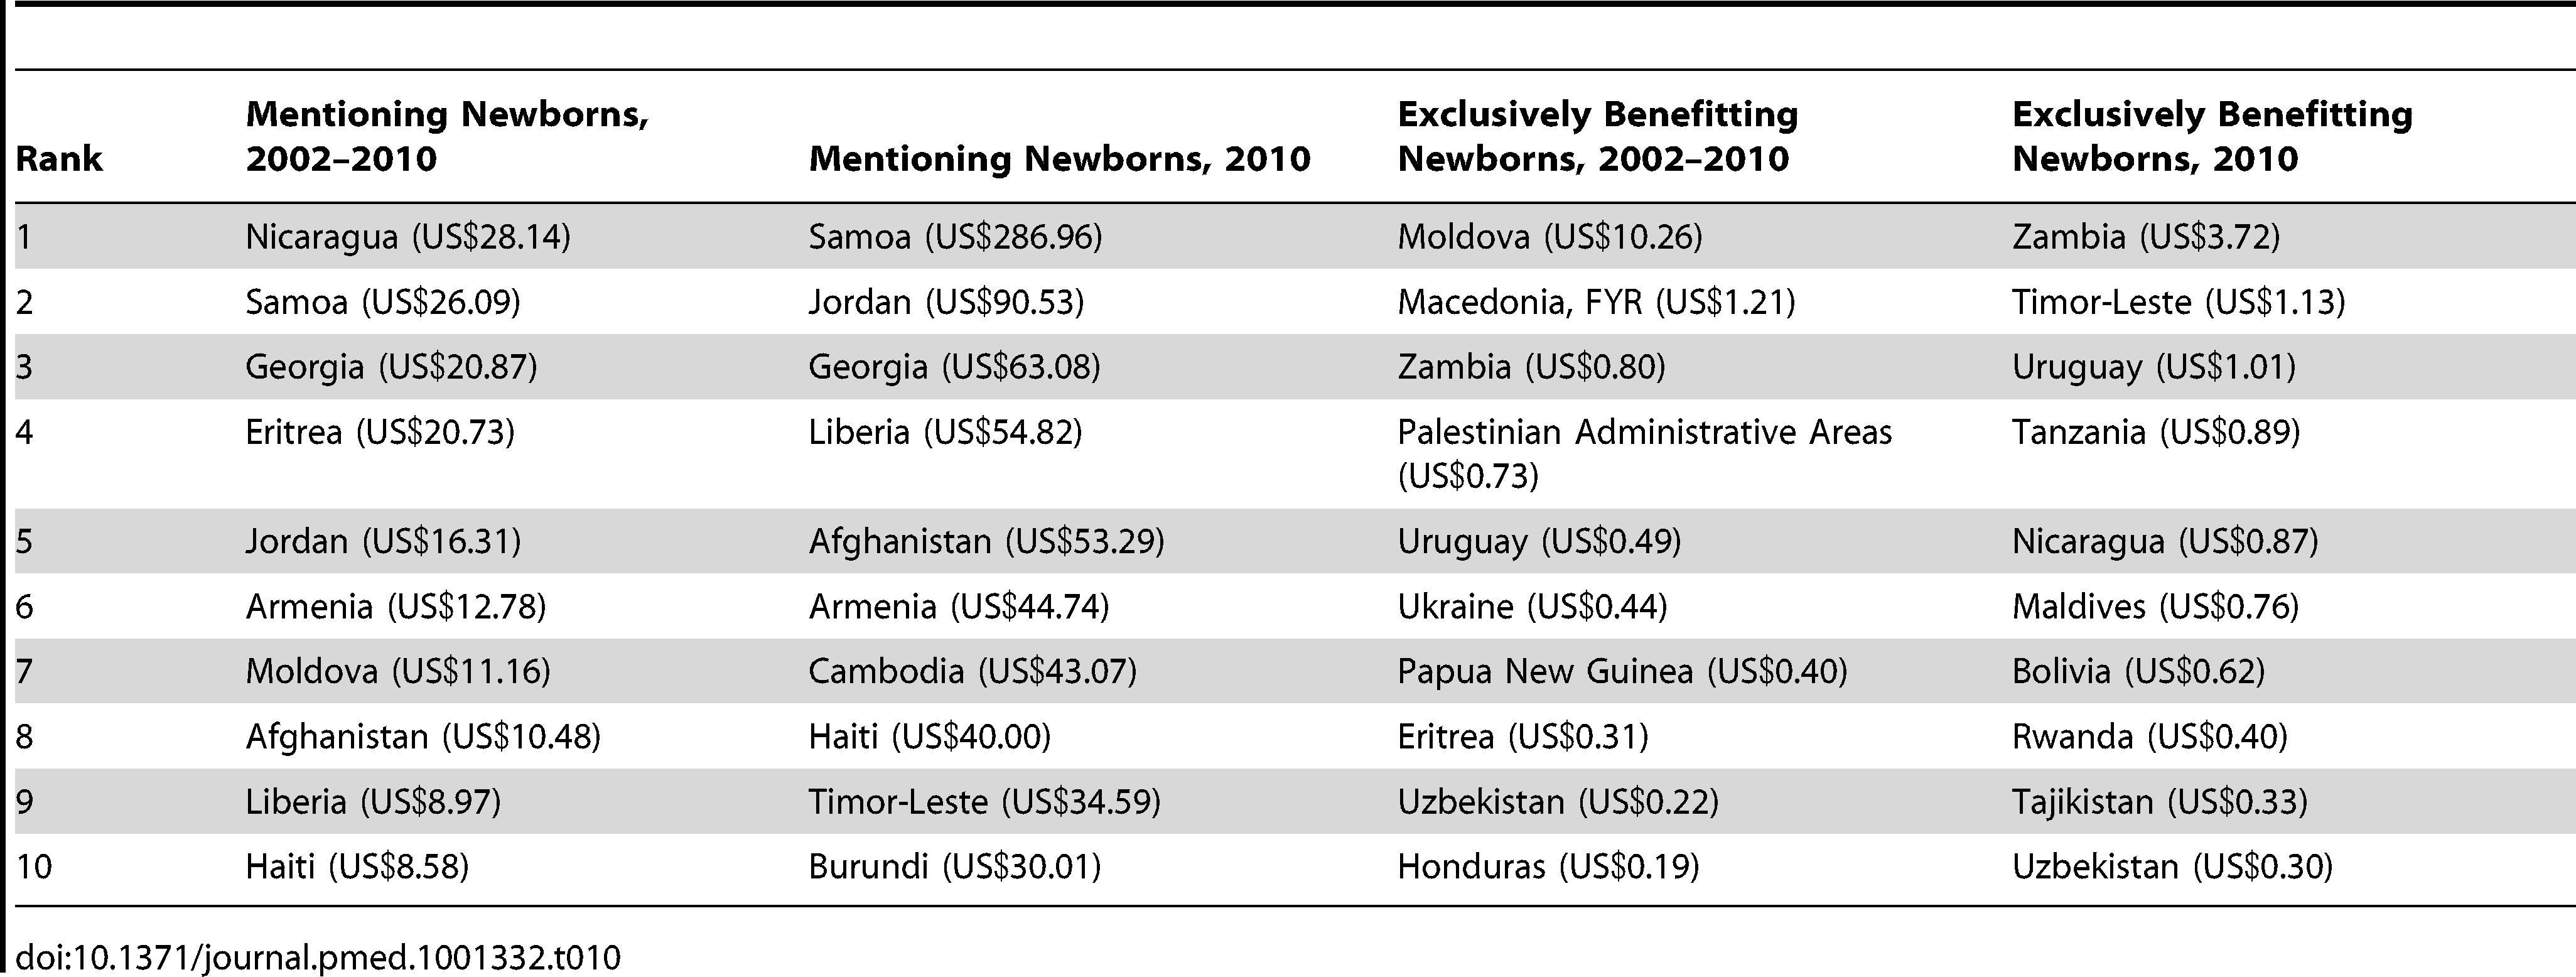 The leading country recipients of aid per live birth mentioning and exclusively benefitting newborns over the period 2002–2010 and in 2010 (constant 2010 US$).